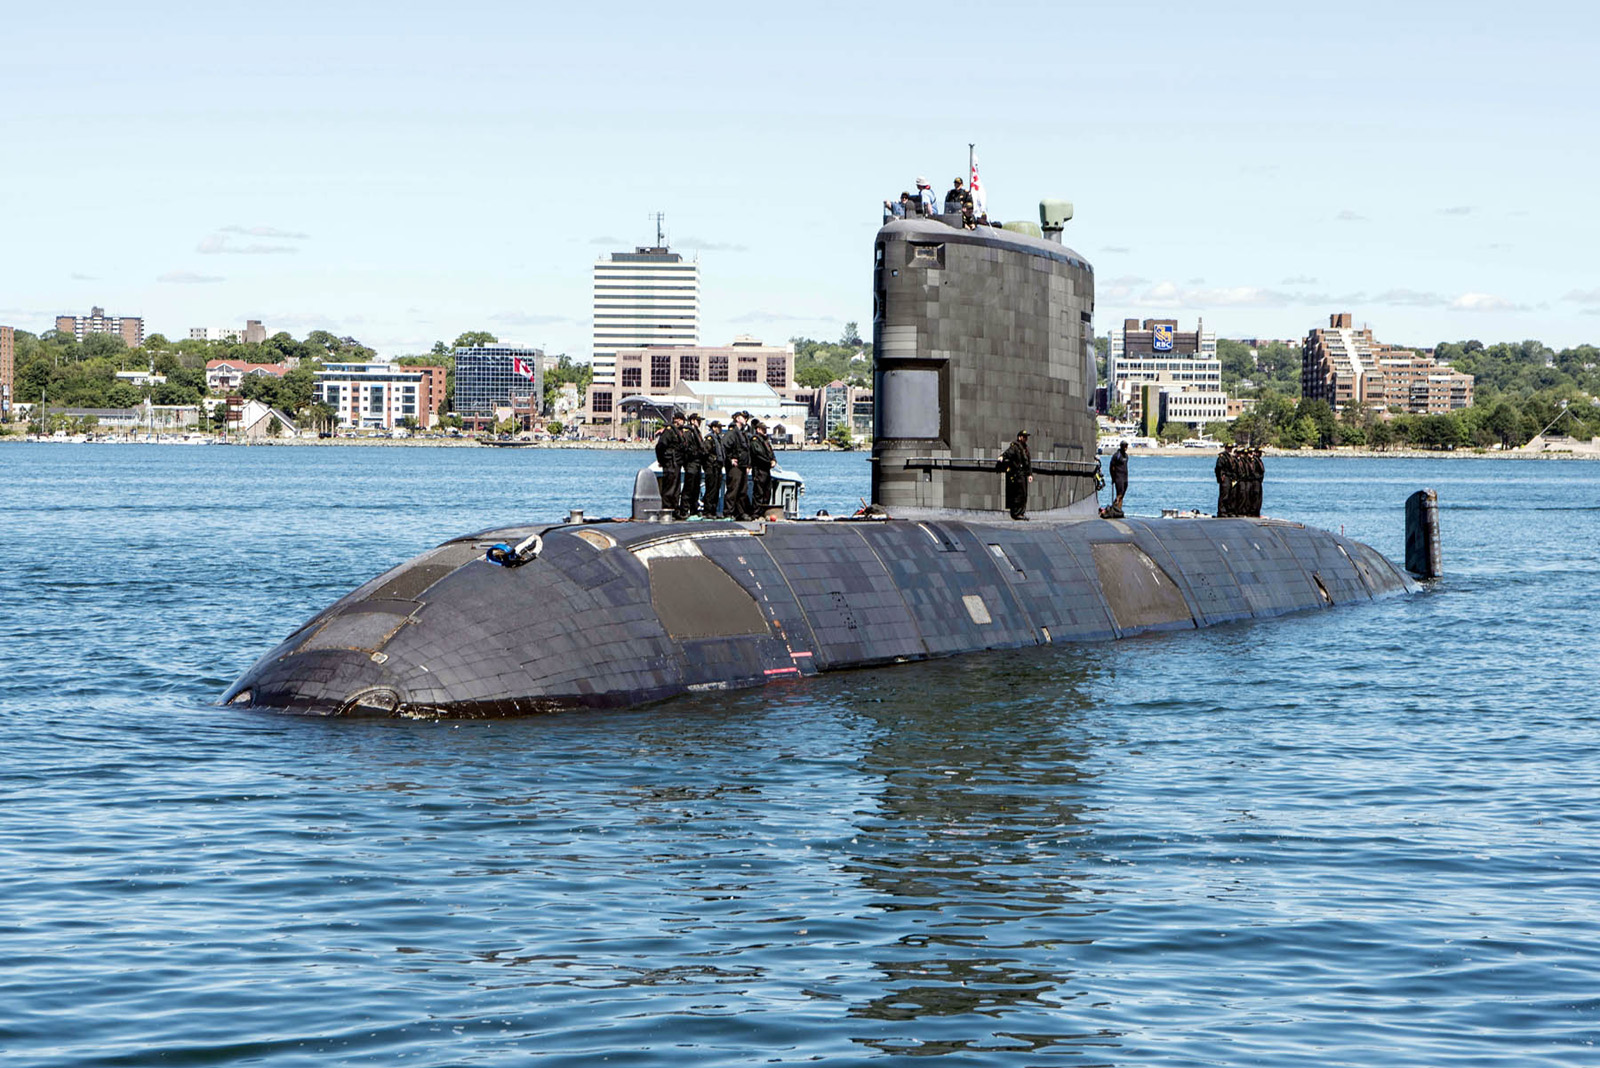 HMCS Windsor returns to Halifax after being re-tasked during a NATO exercise.